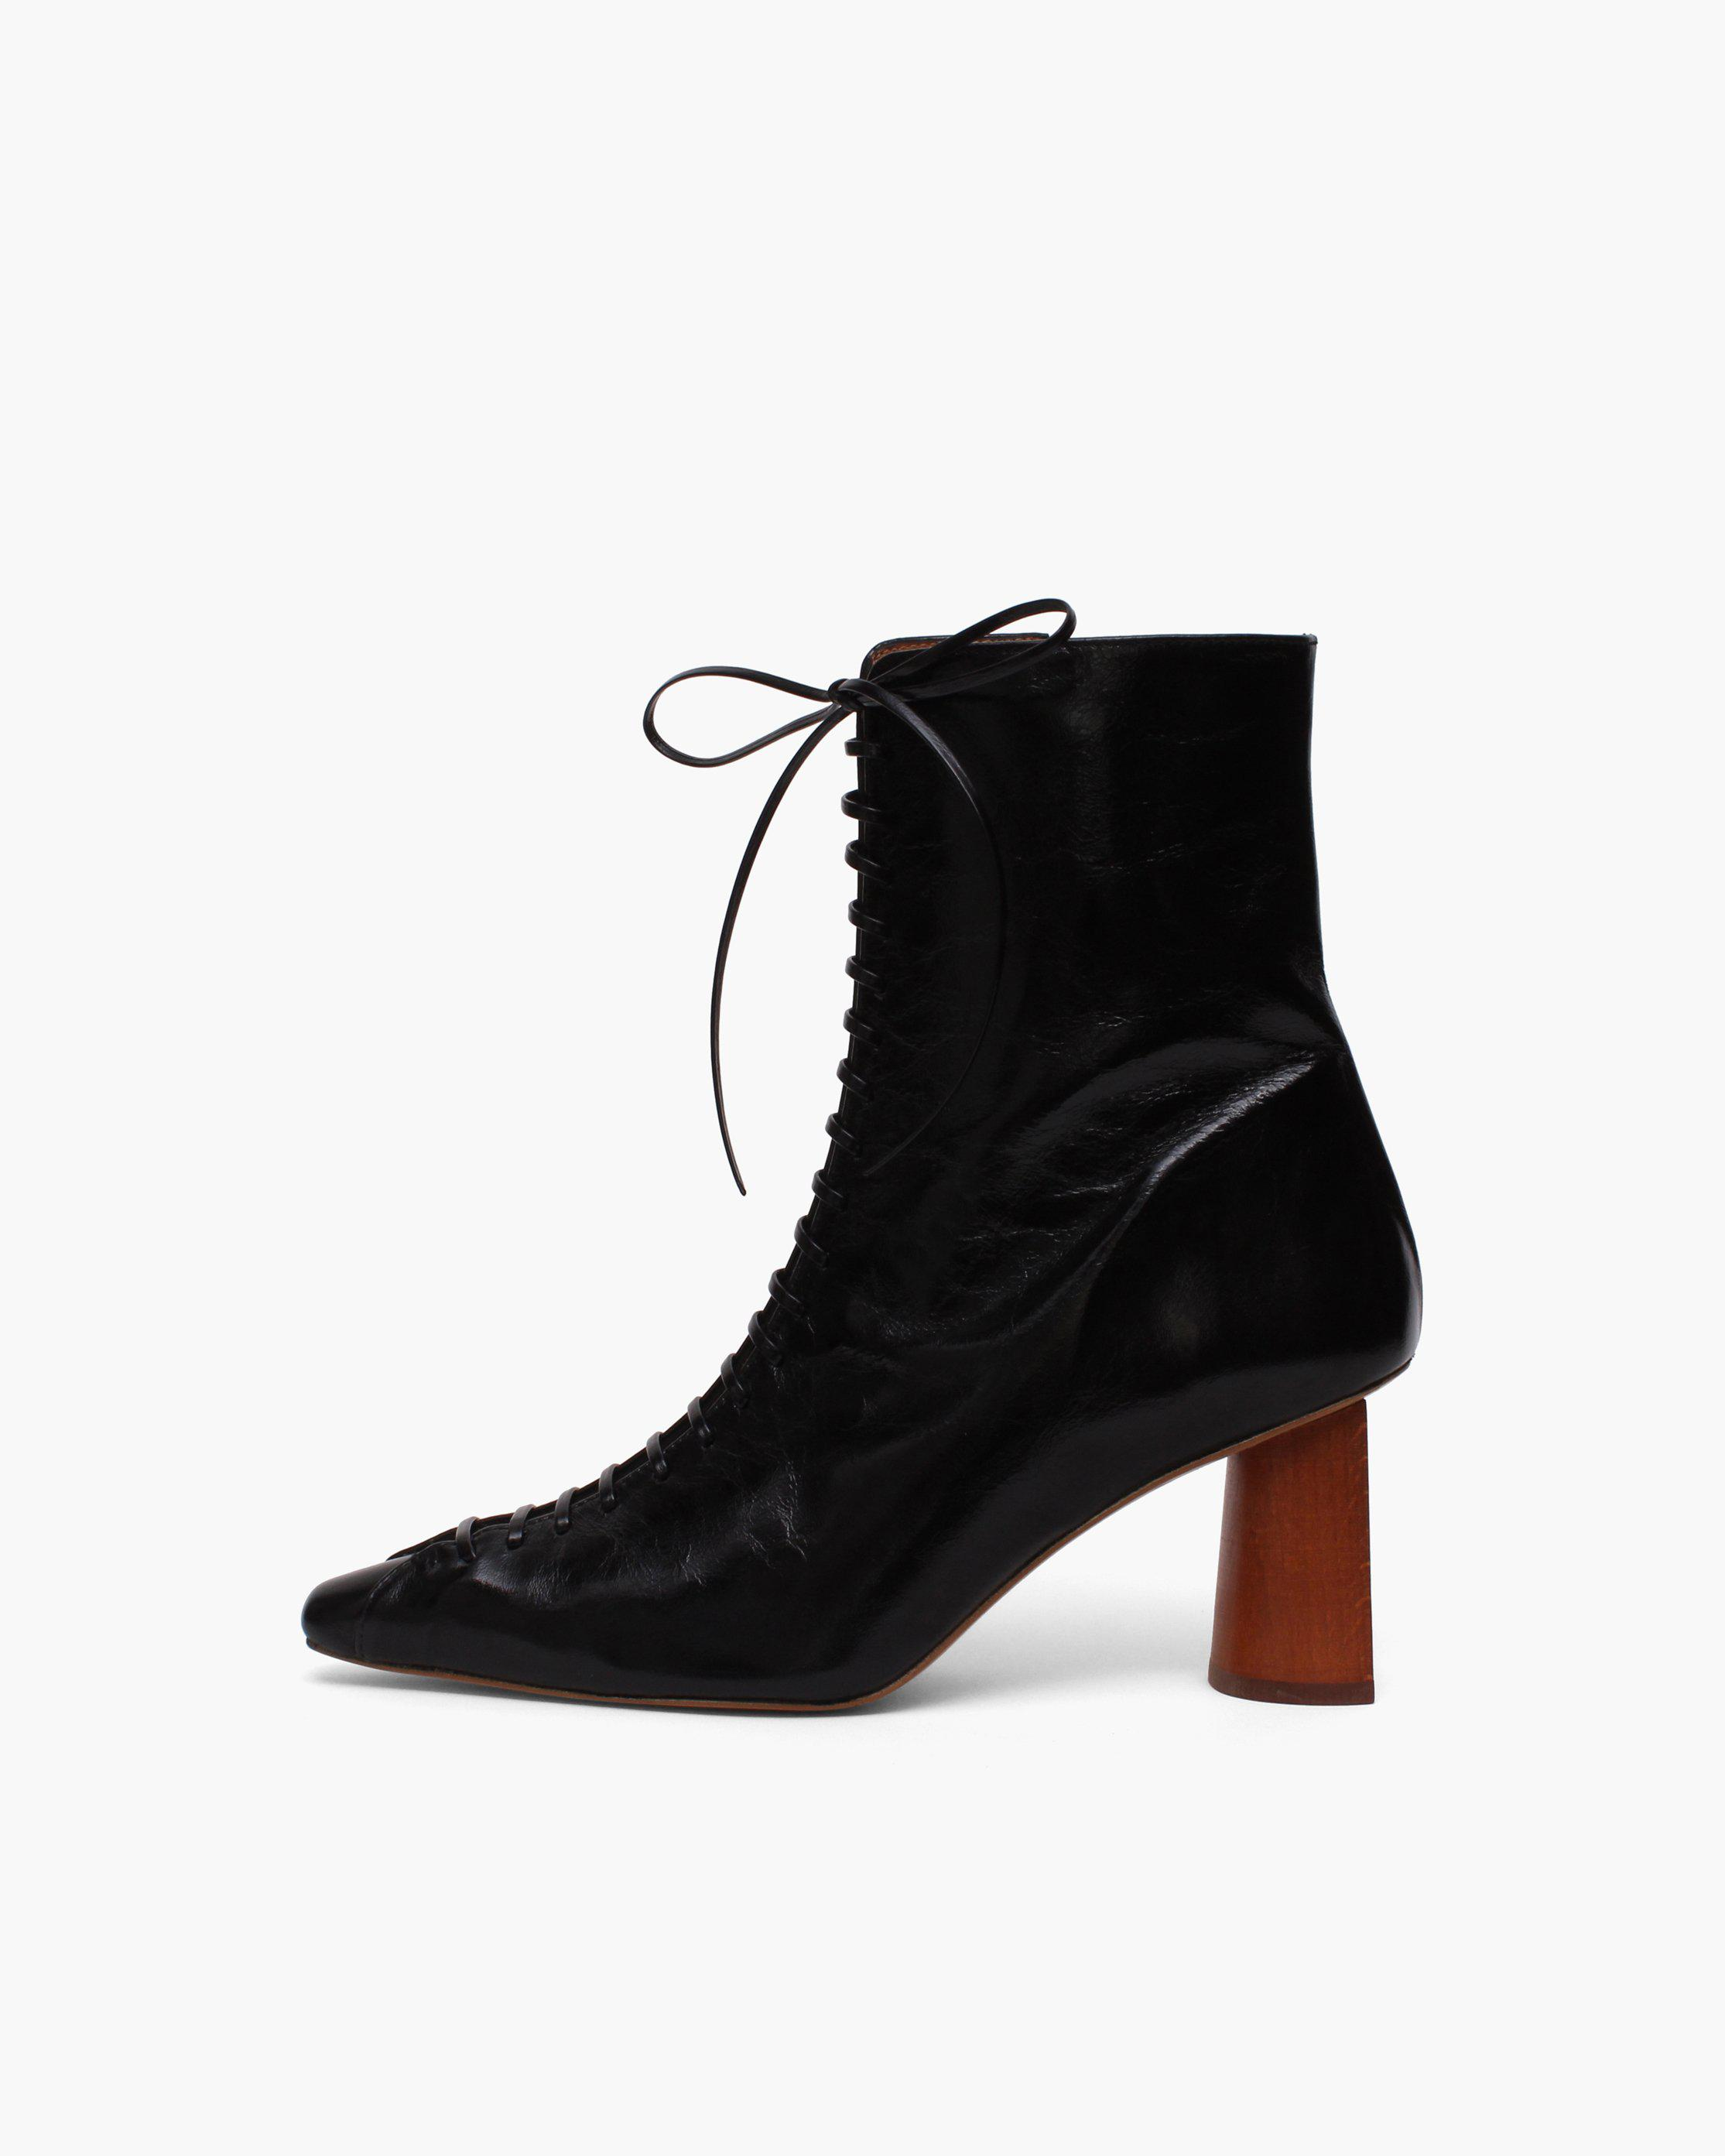 Peyton Boots Leather Patent Crinkle Black